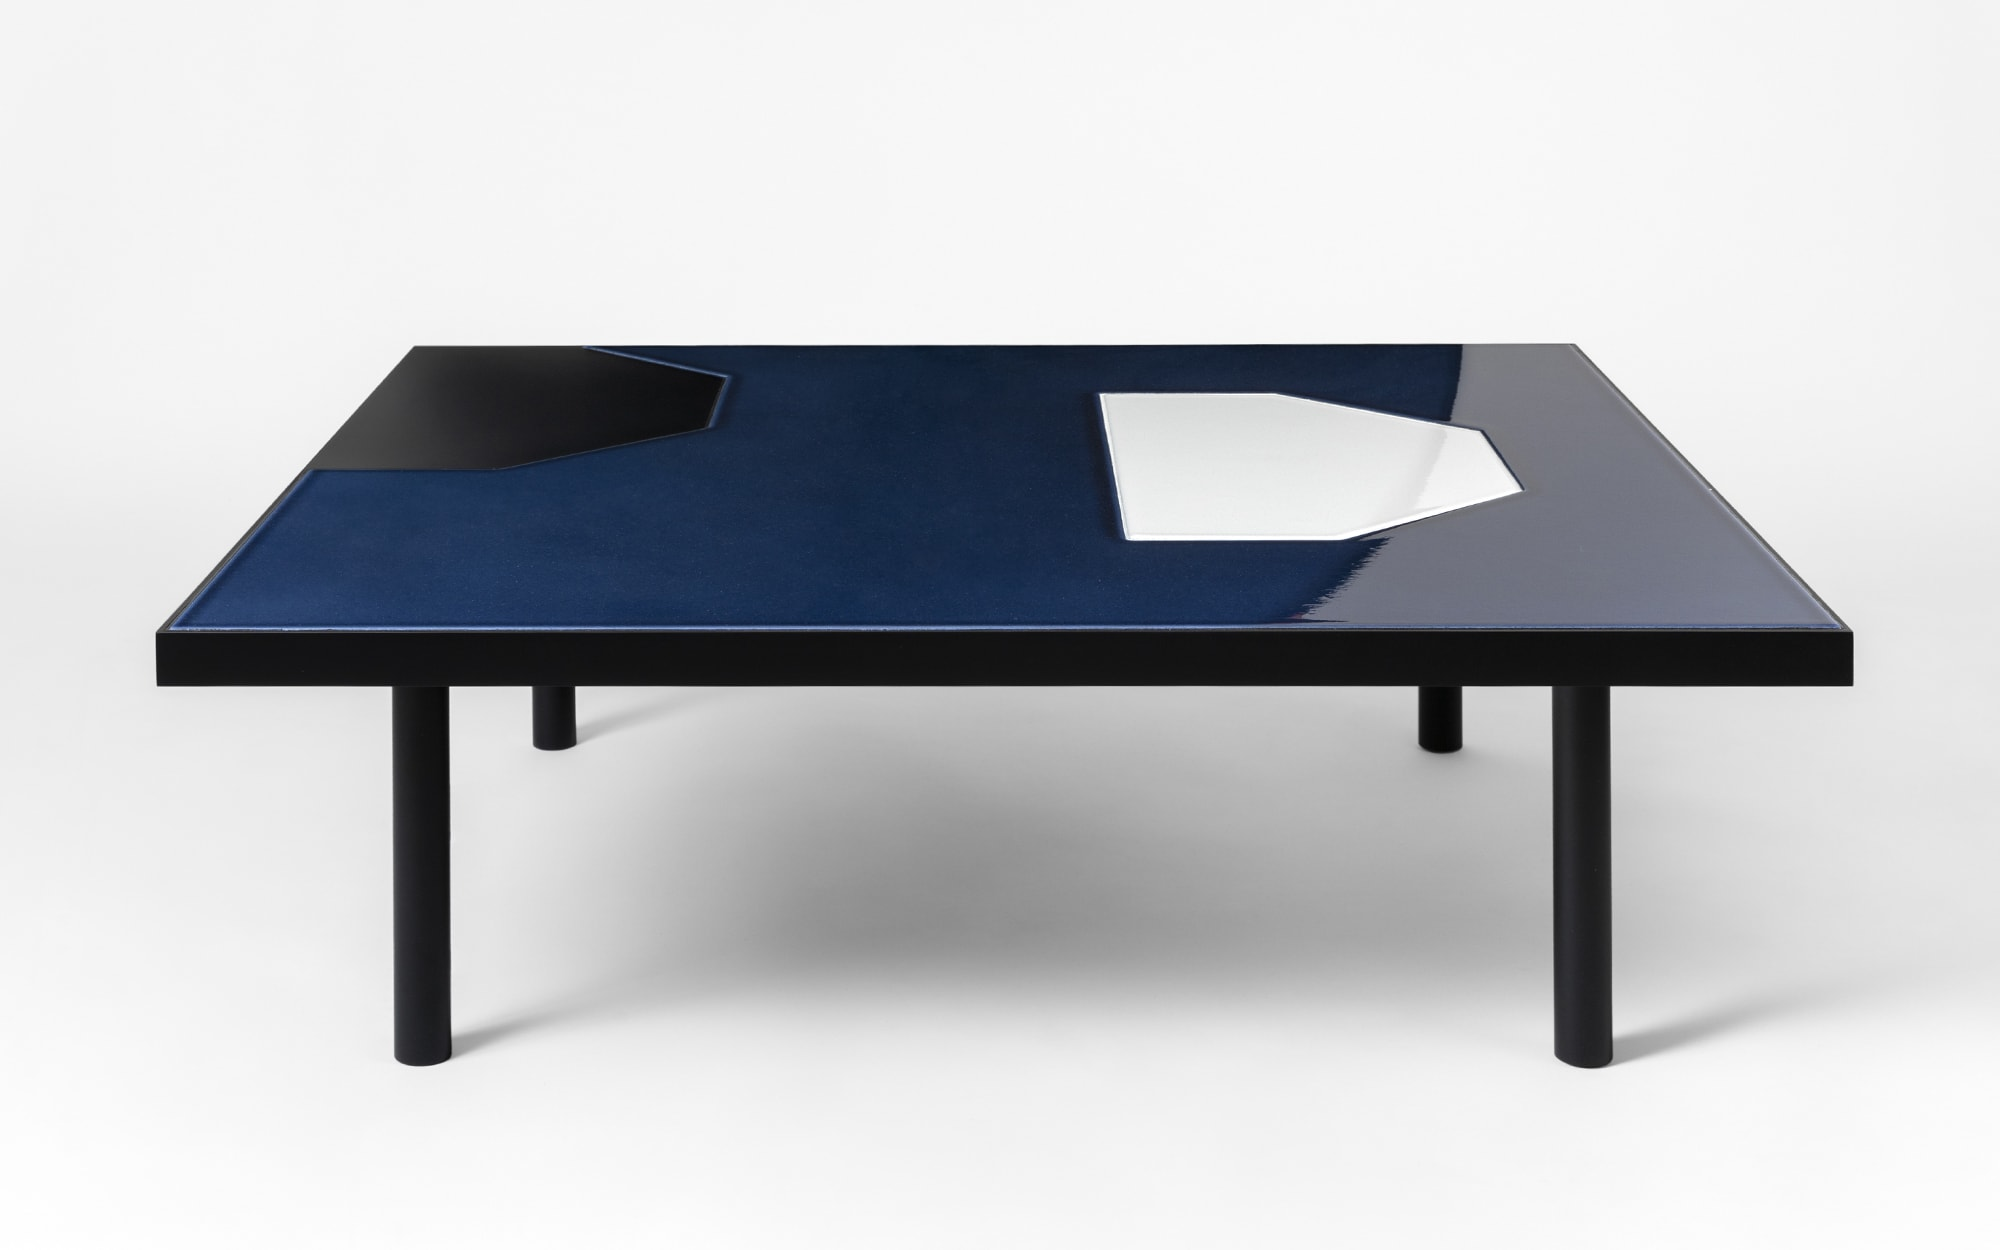 Pierre Charpin Translation Poligono Coffee Table